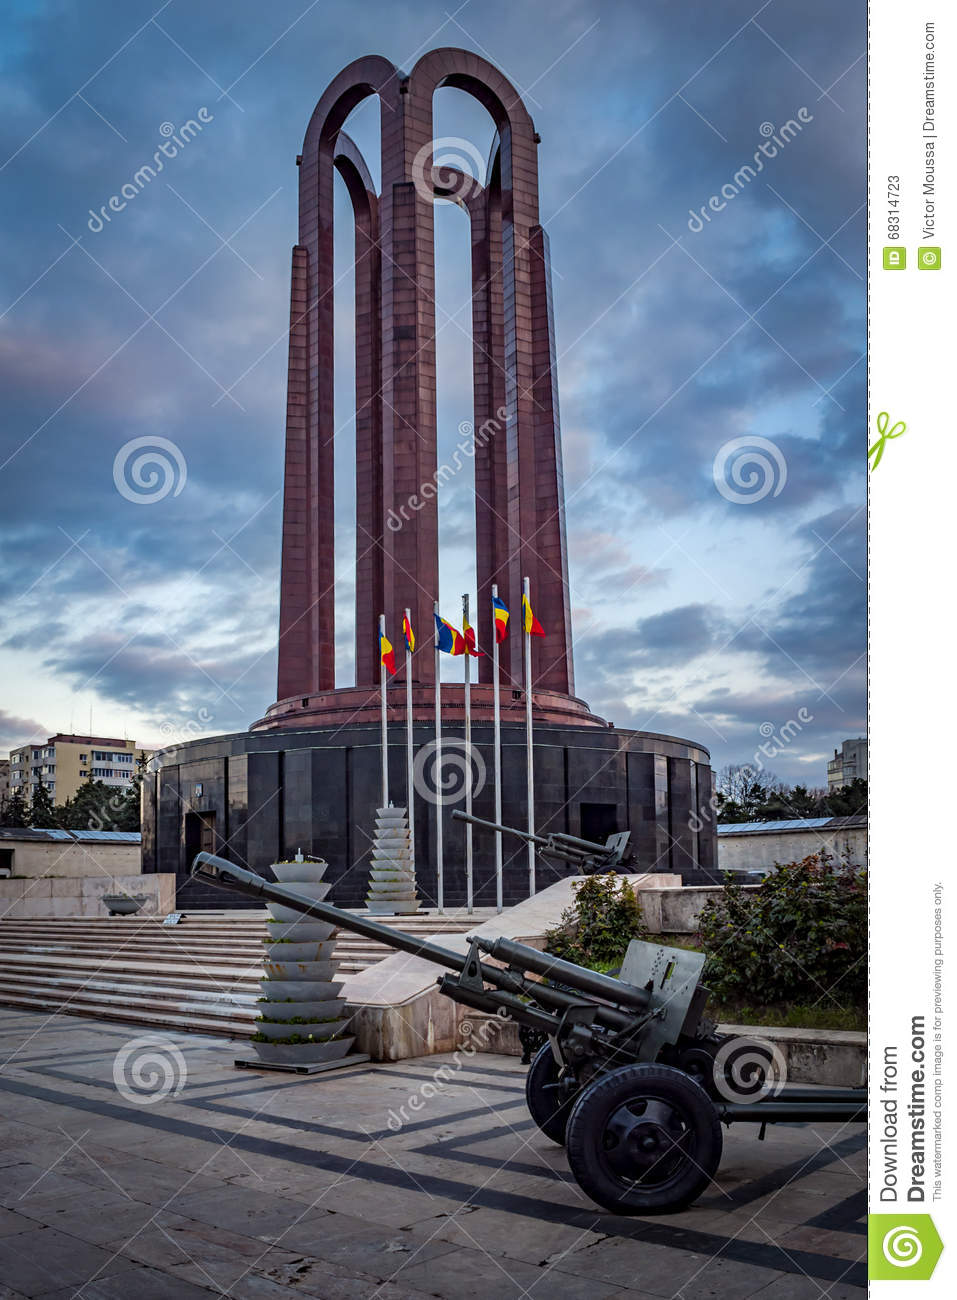 tomb-unknown-soldier-artillery-cannon-bu